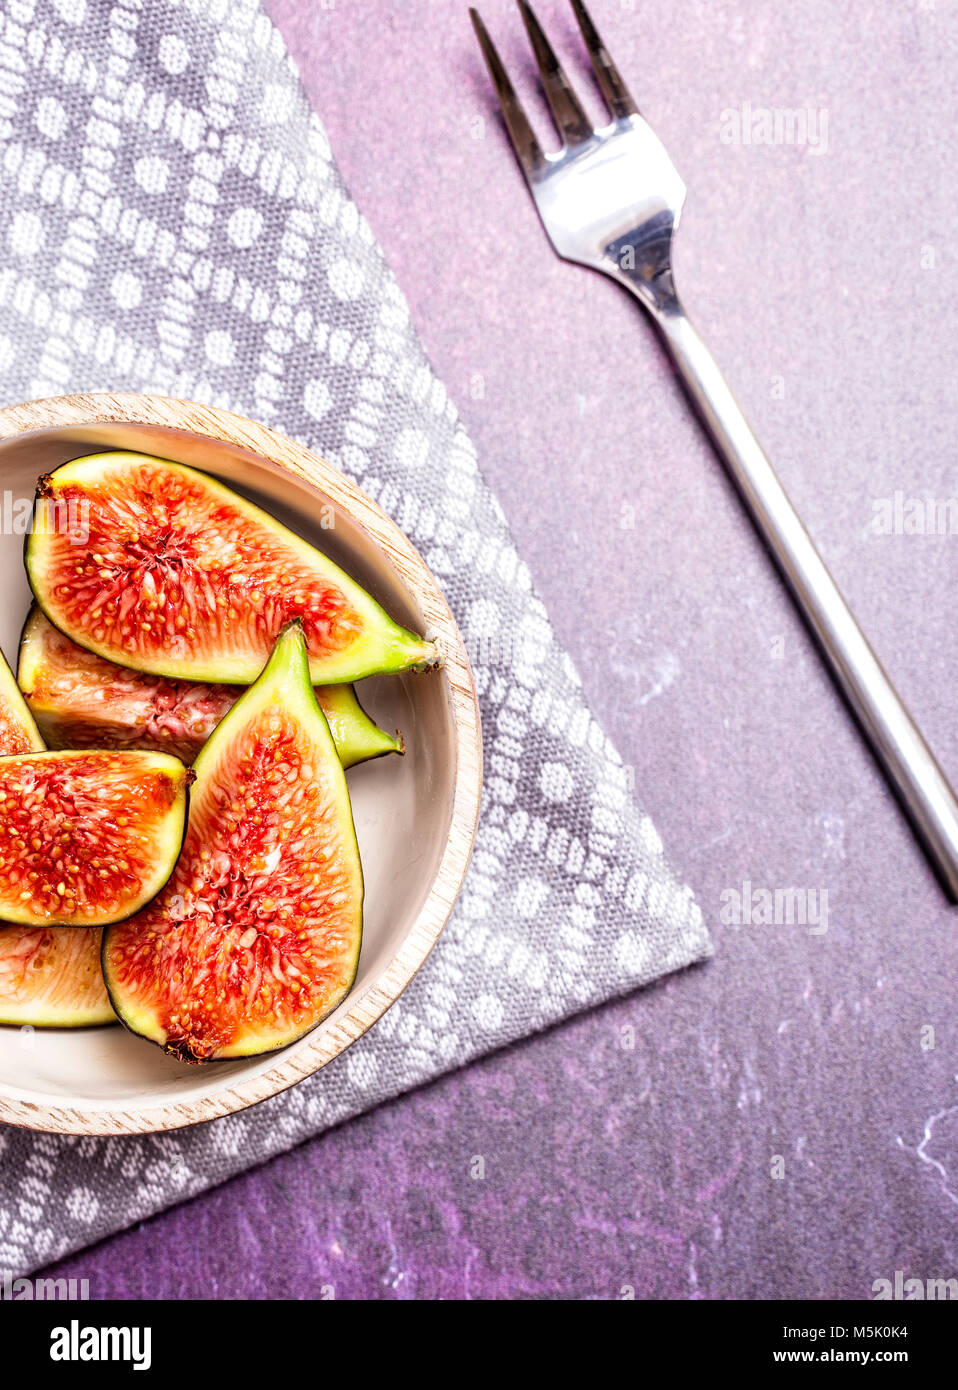 Fresh Figs on a dark background - Stock Image